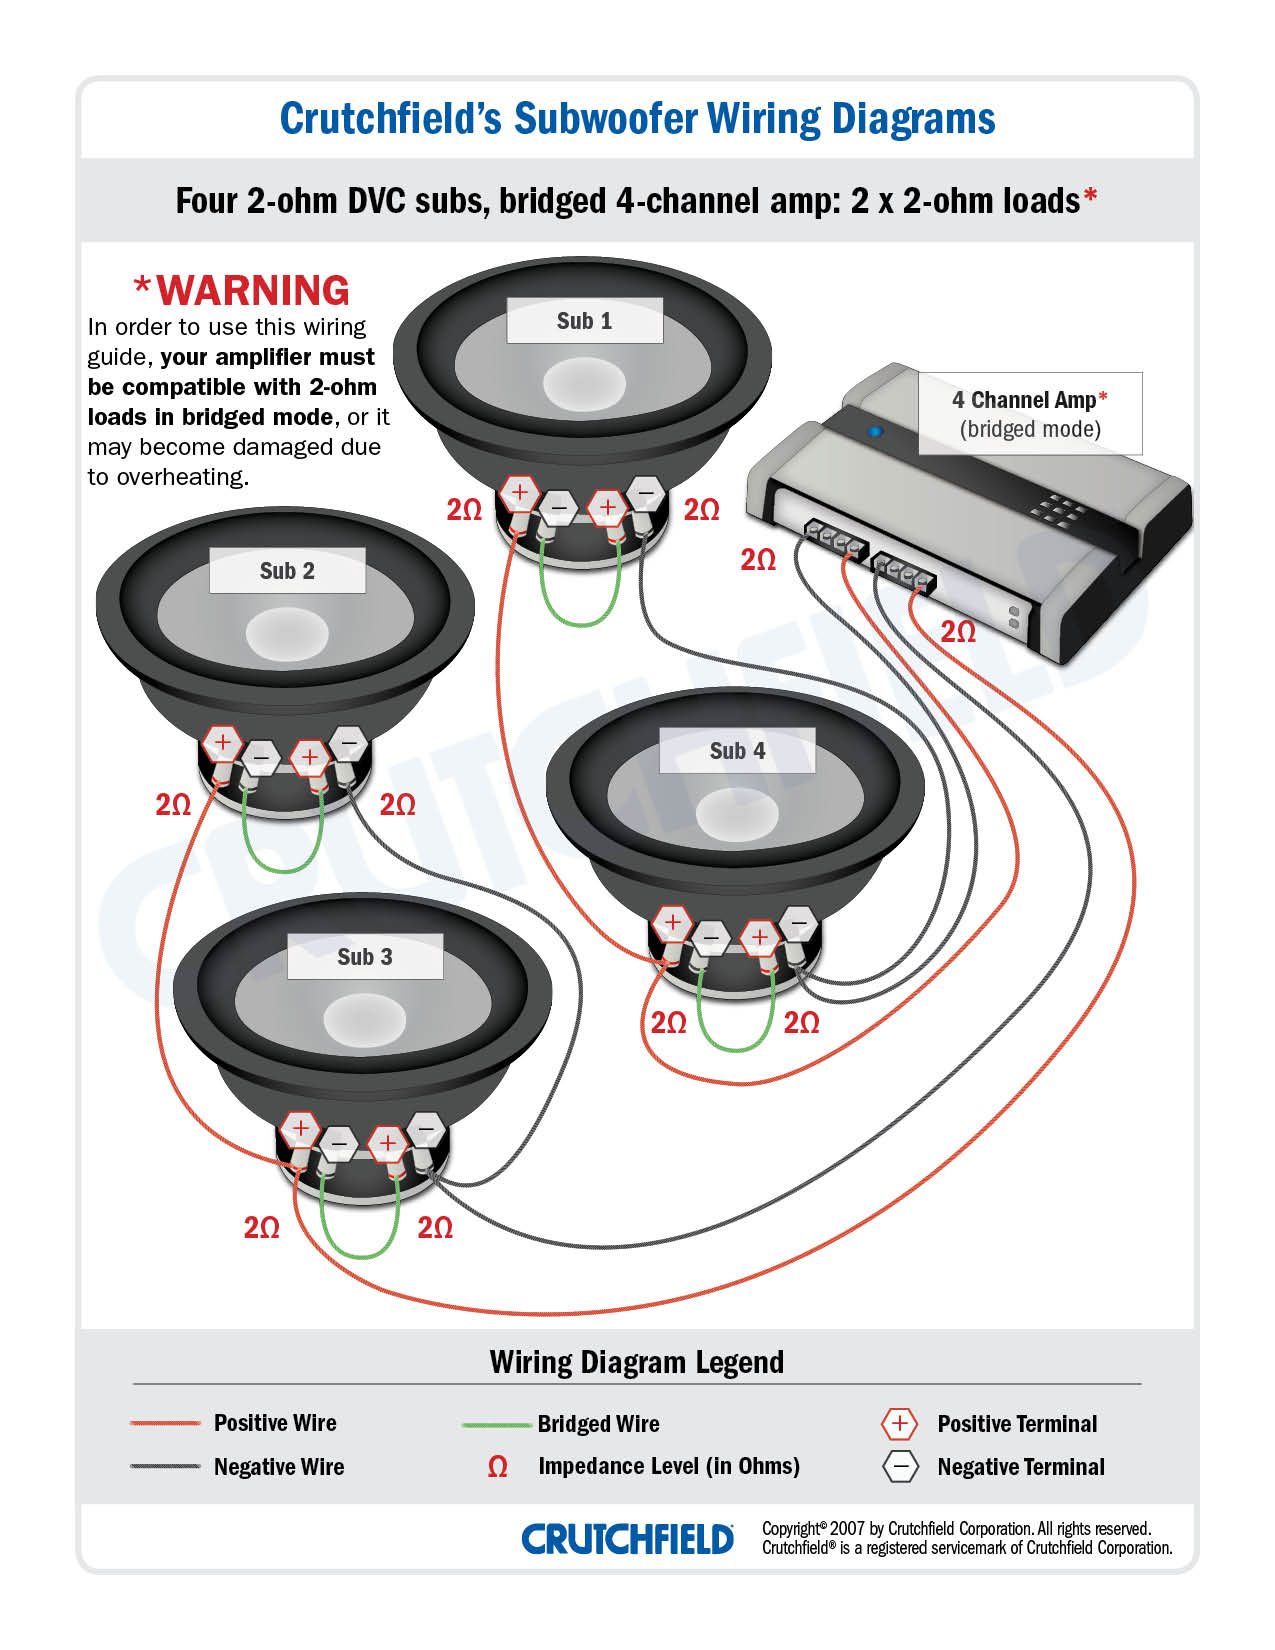 4 DVC 2 ohm 4 ch low imp subwoofer wiring diagrams wiring diagram for car audio at fashall.co